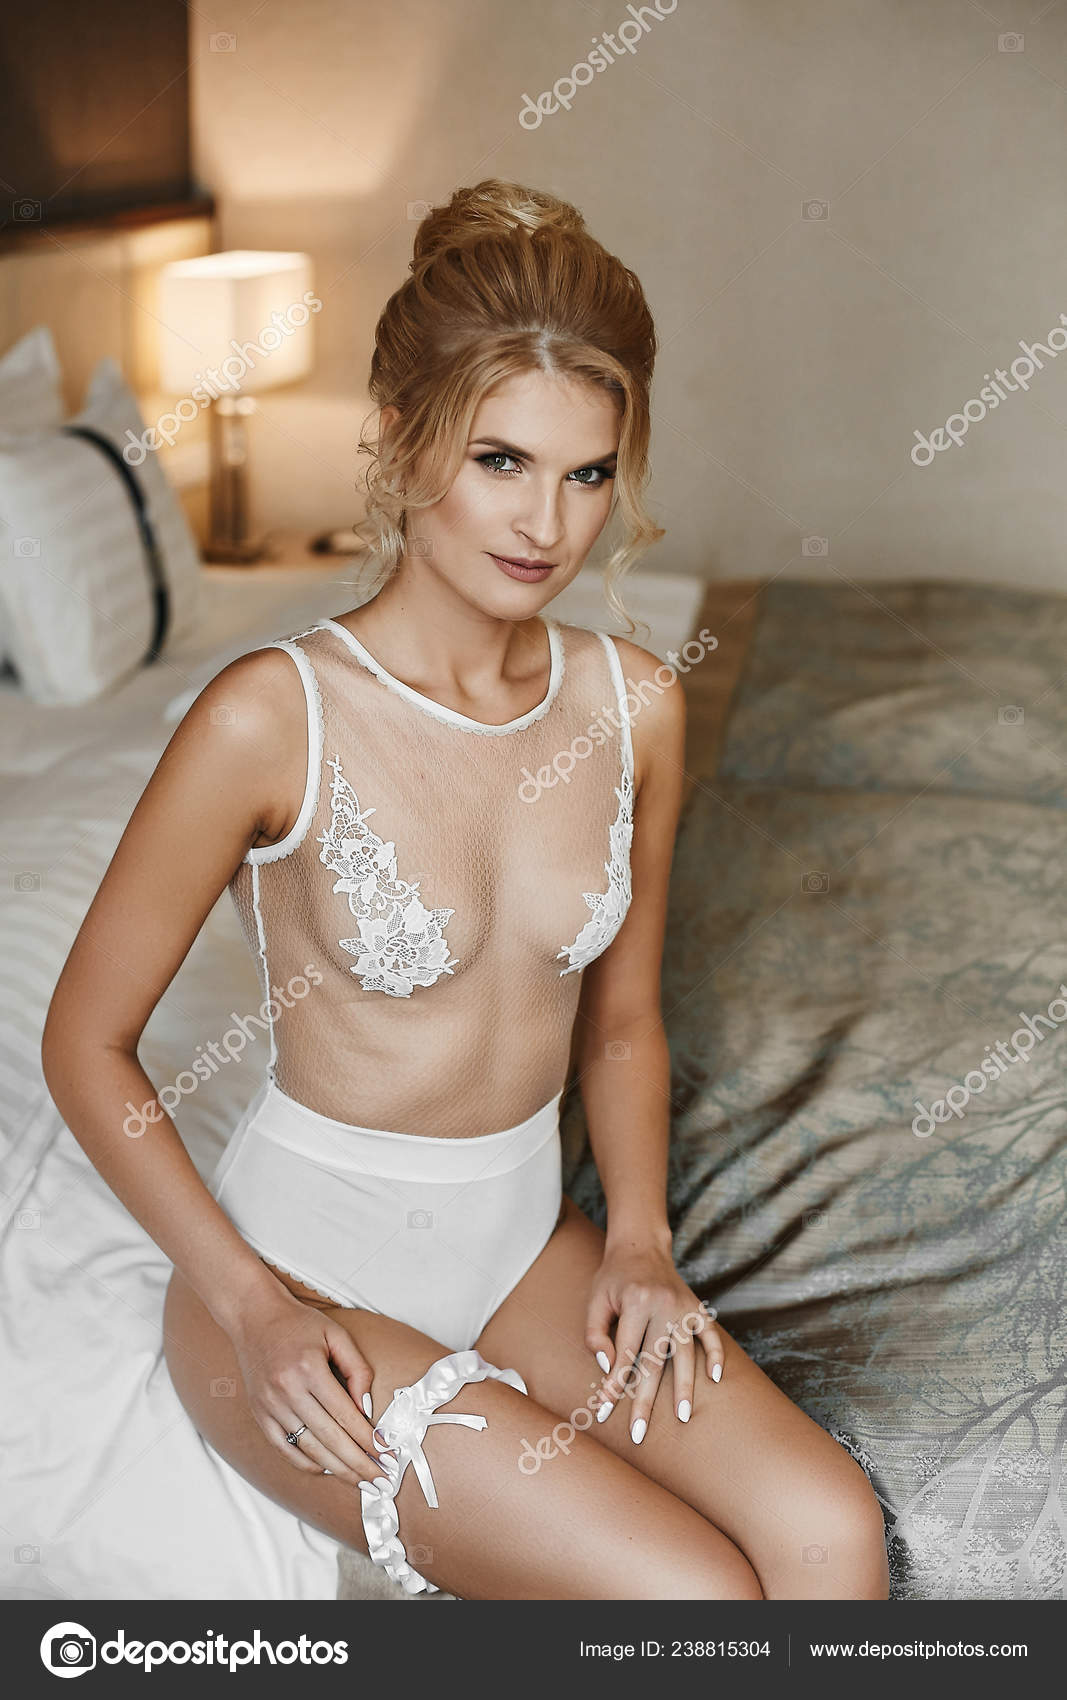 Naked girls indoor Sexy And Beautiful Half Naked Blonde Model Girl With High Hairstyle And With Gentle Makeup In Fashionable Lingerie Puts On Stylish Wedding Garter And Posing At Interior Stock Photo By C Innarevyako 238815304